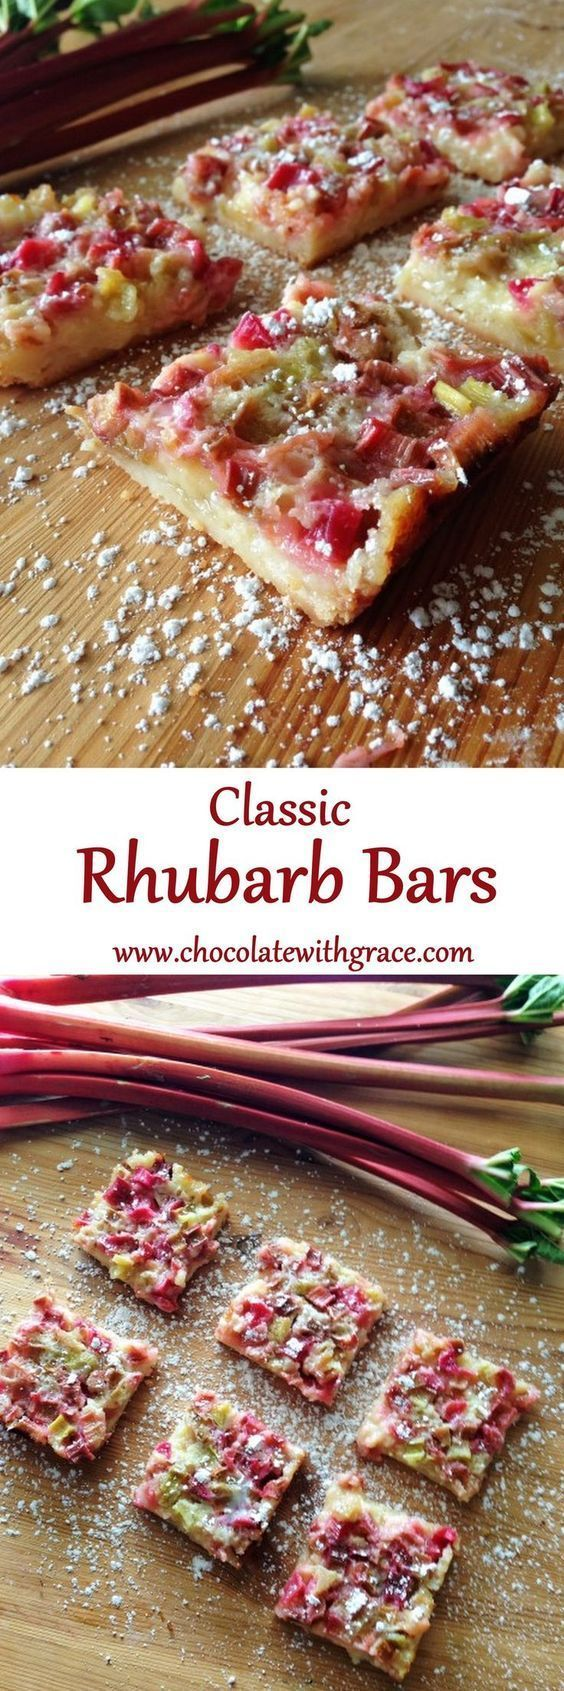 Rhubarb Bars - shortbread crust and tangy rhubarb topping.: